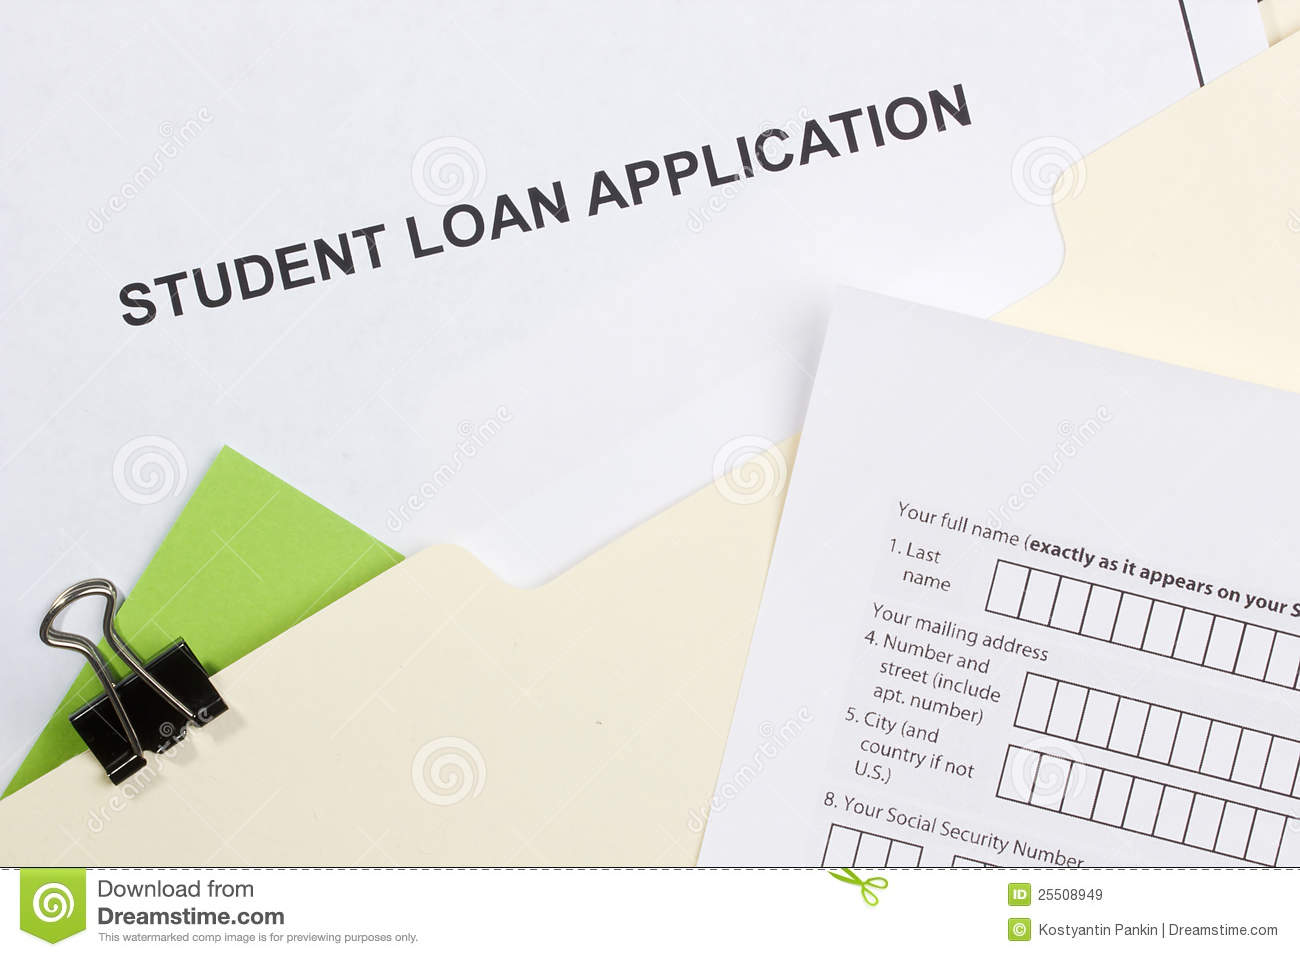 Student Loan Application Royalty Free Stock Images - Image: 25508949